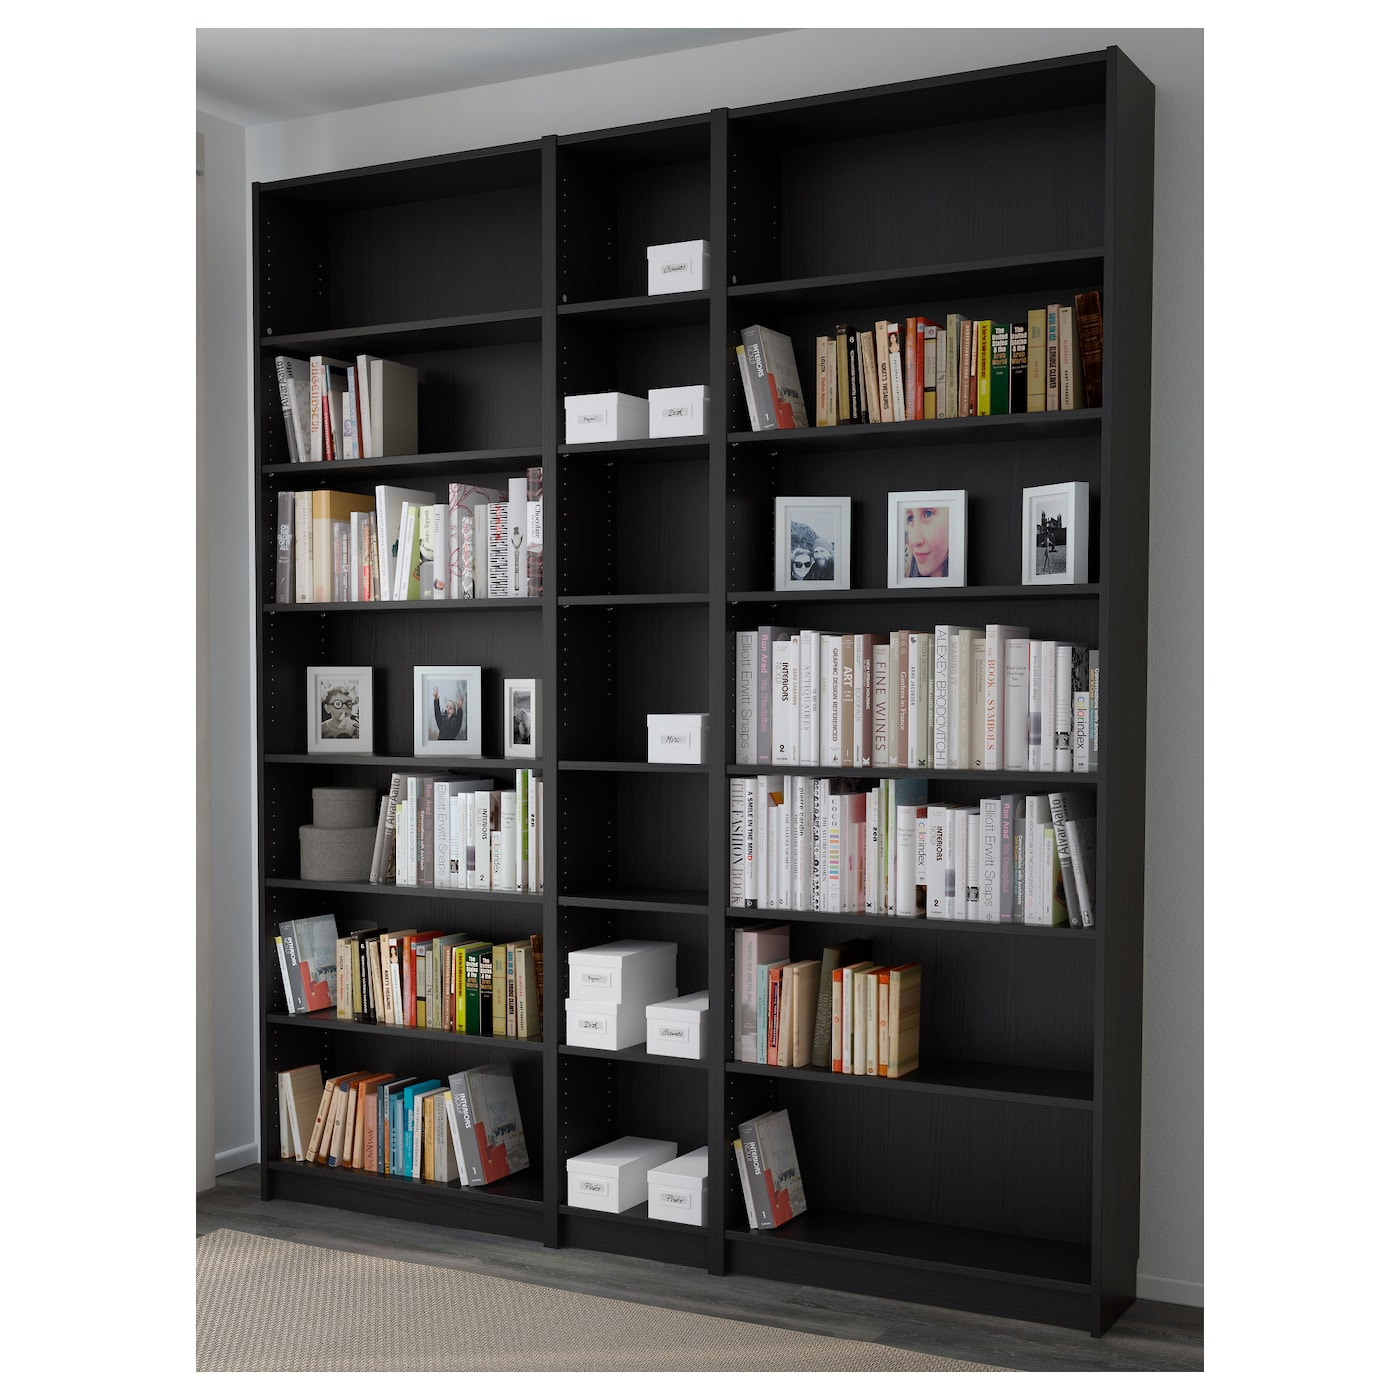 https://www.ikea.com/be/nl/images/products/billy-boekenkast-zwartbruin__0451889_pe600820_s5.jpg